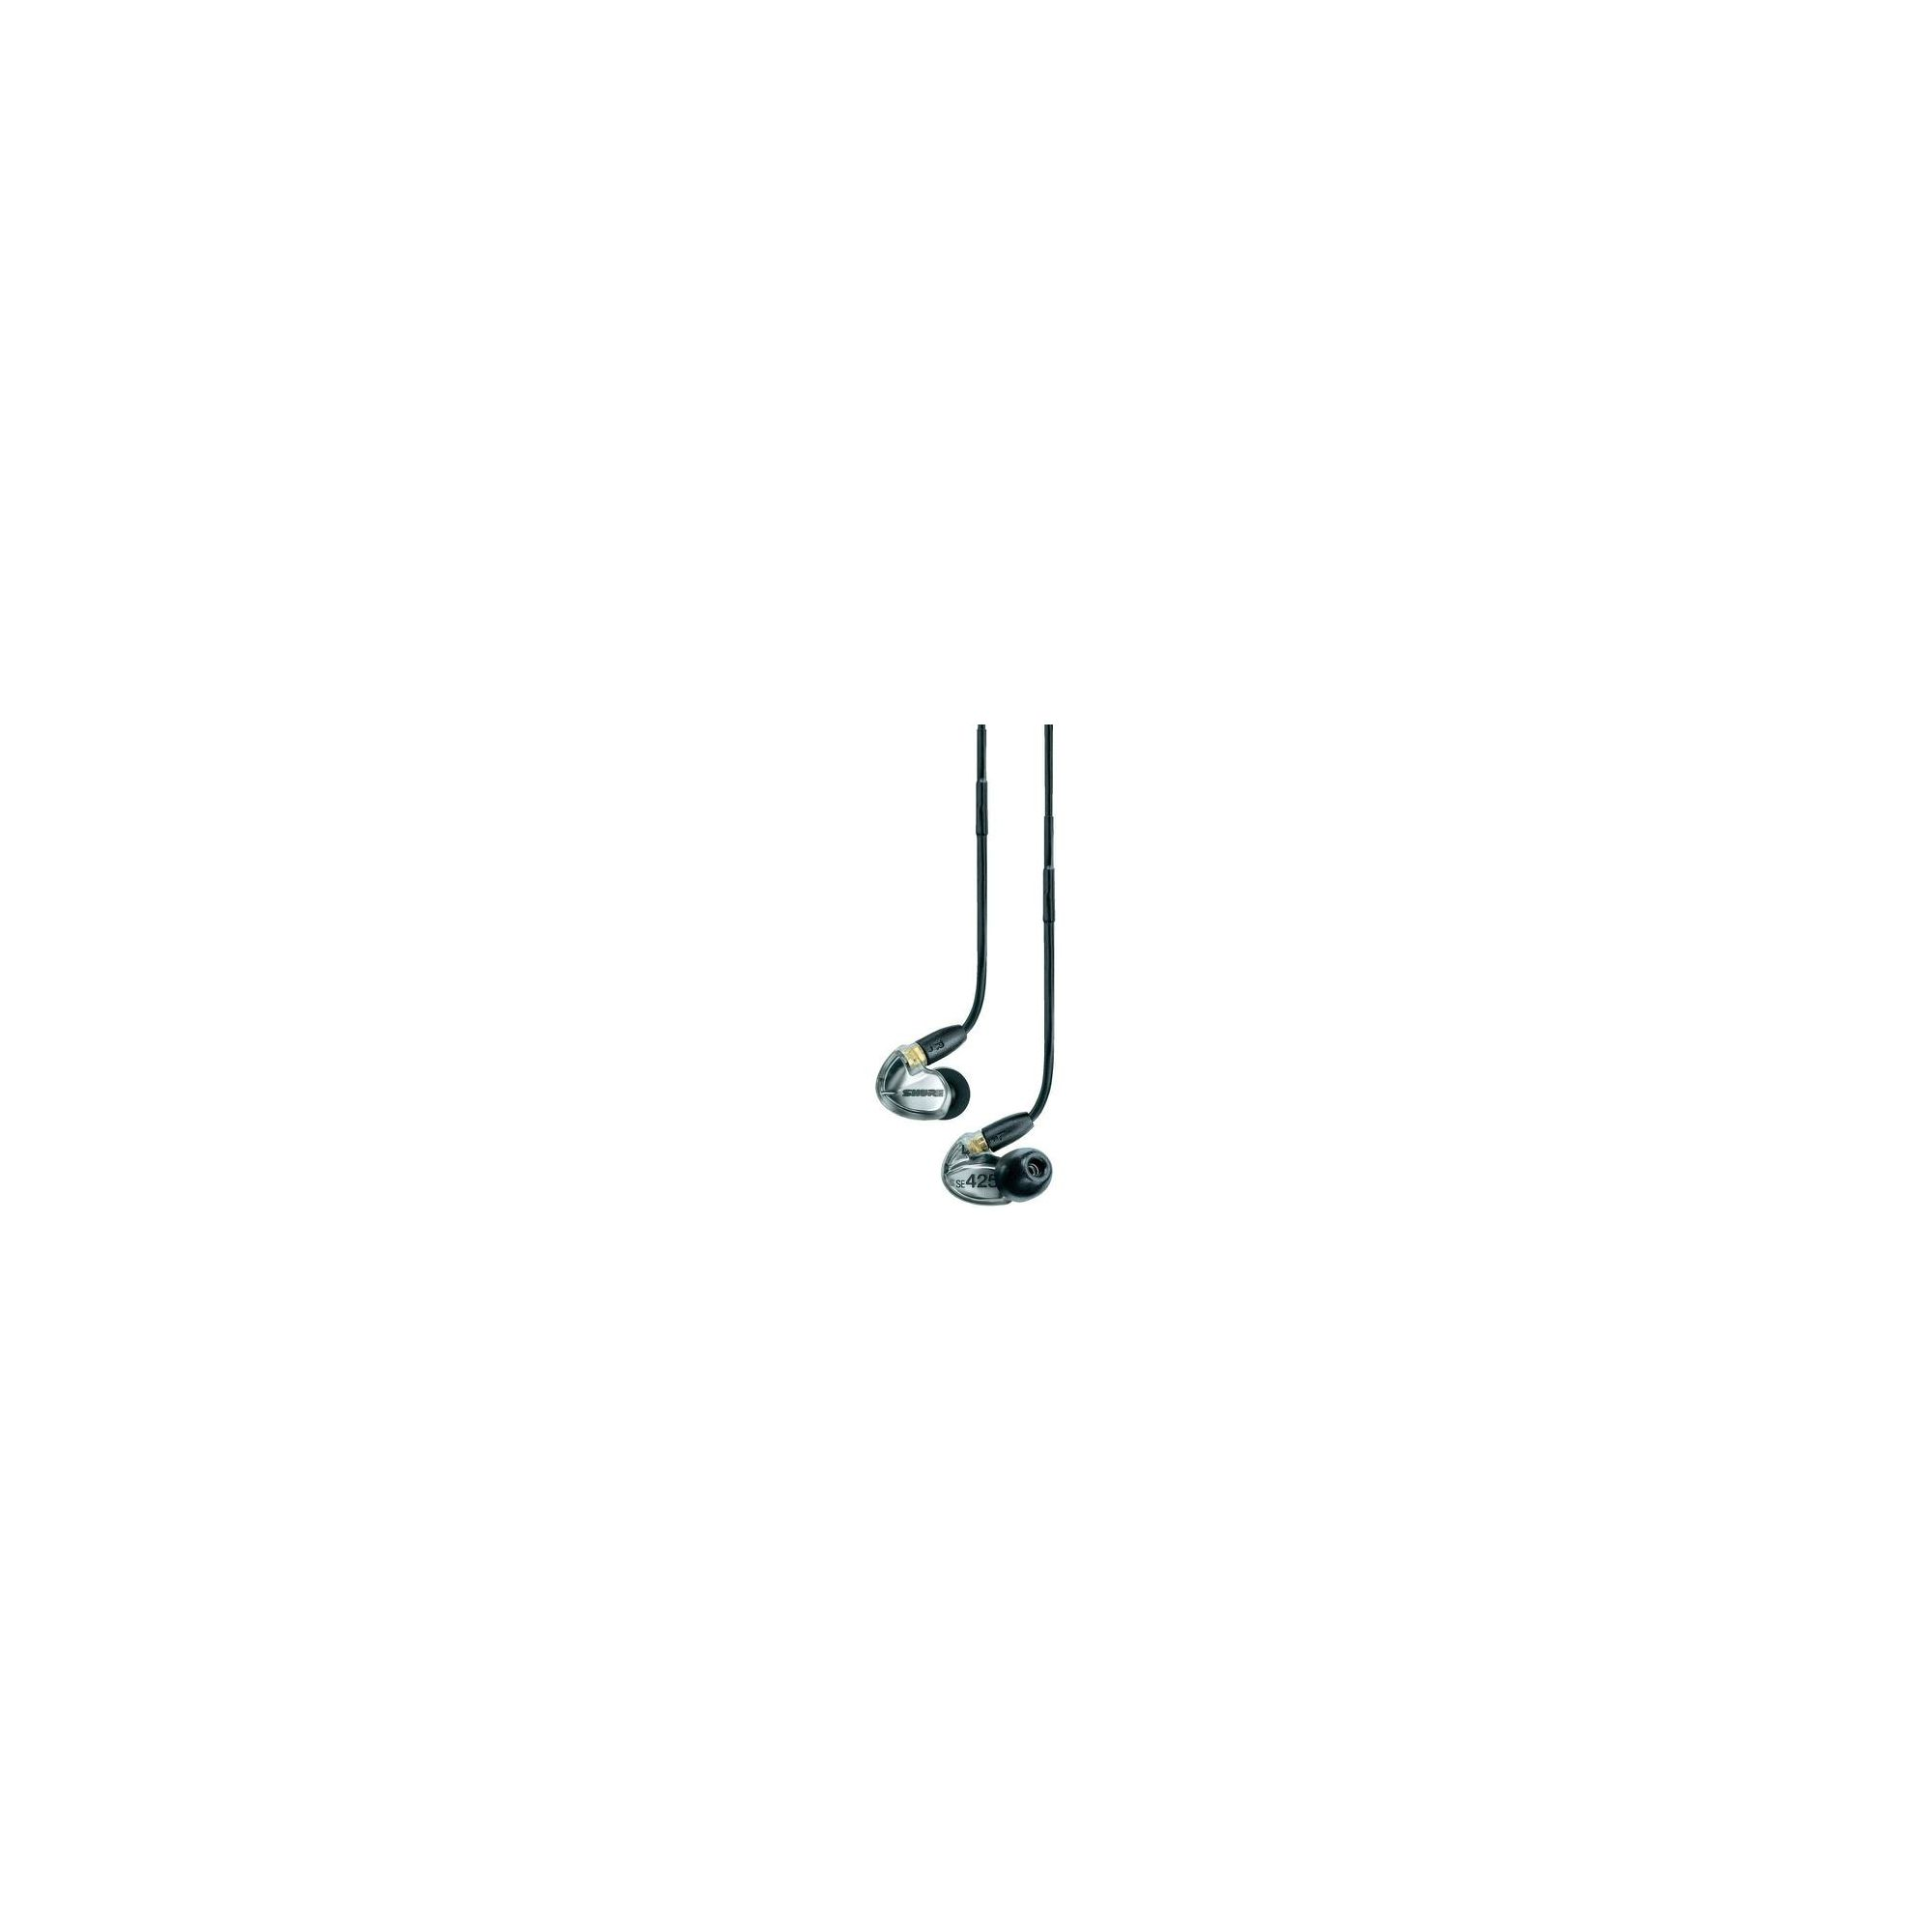 Shure Se425 In-ear Earphones at Tesco Direct